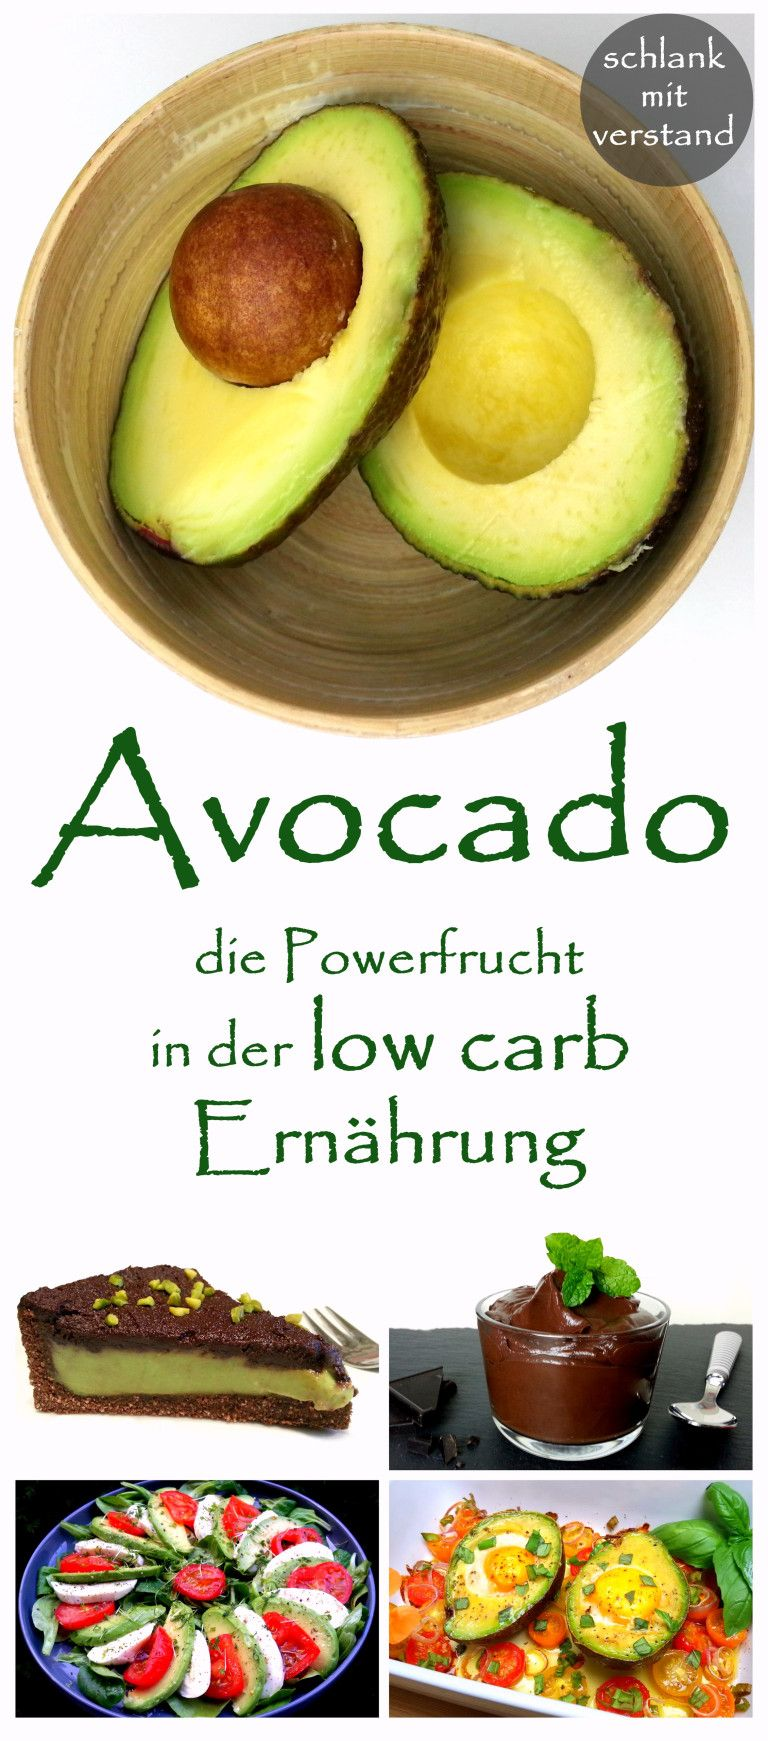 avocado powerfrucht low carb rezepte pinterest ern hrung avocado und avocado rezepte. Black Bedroom Furniture Sets. Home Design Ideas